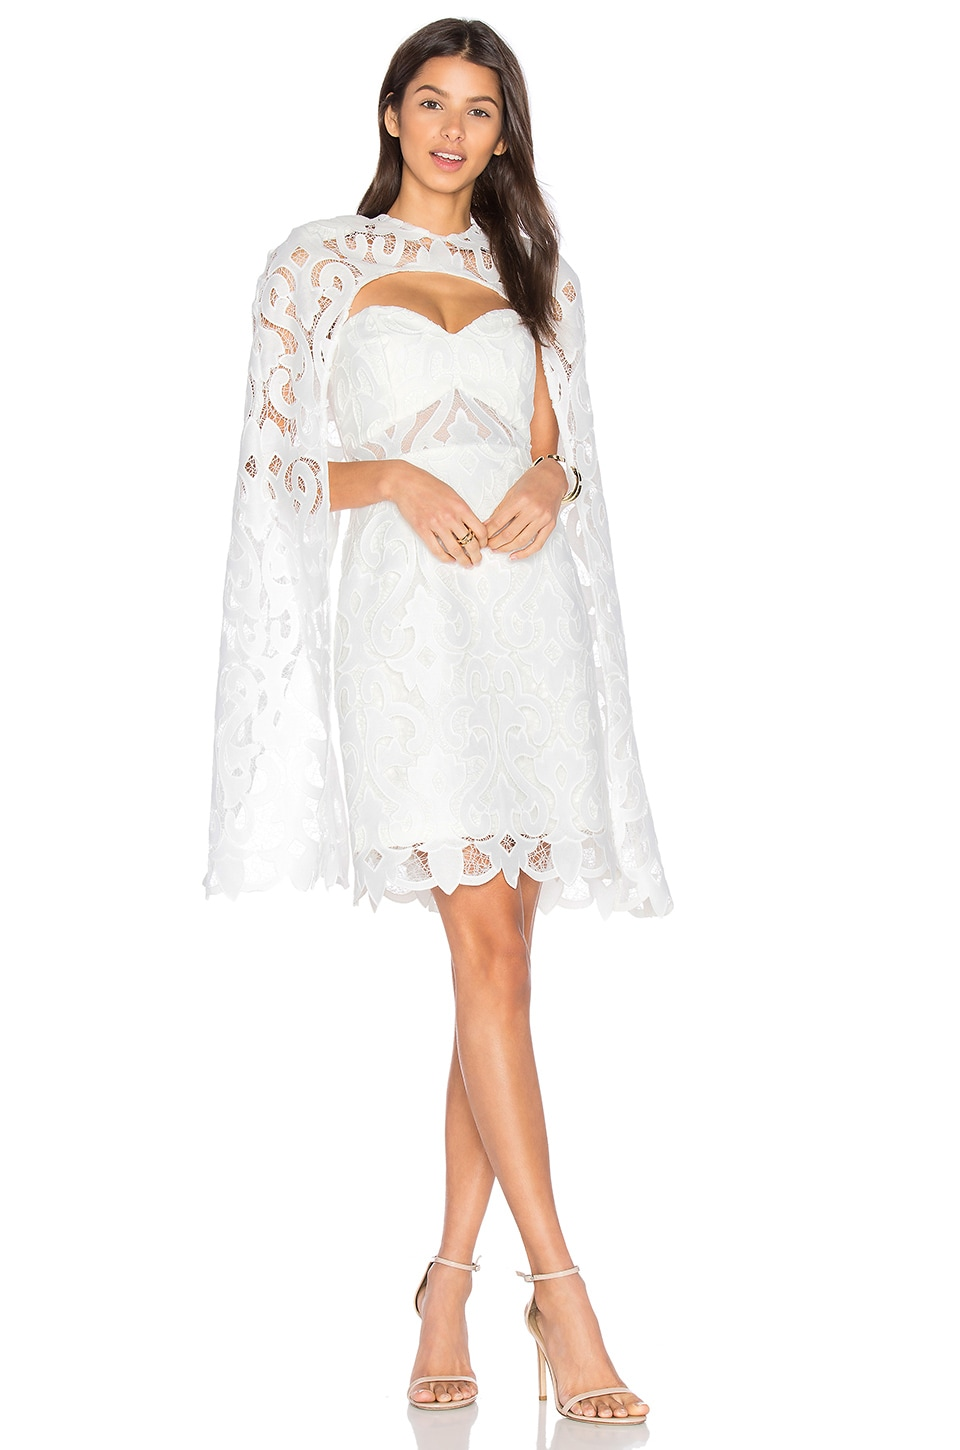 THURLEY Khalessi Cape Dress in Ivory